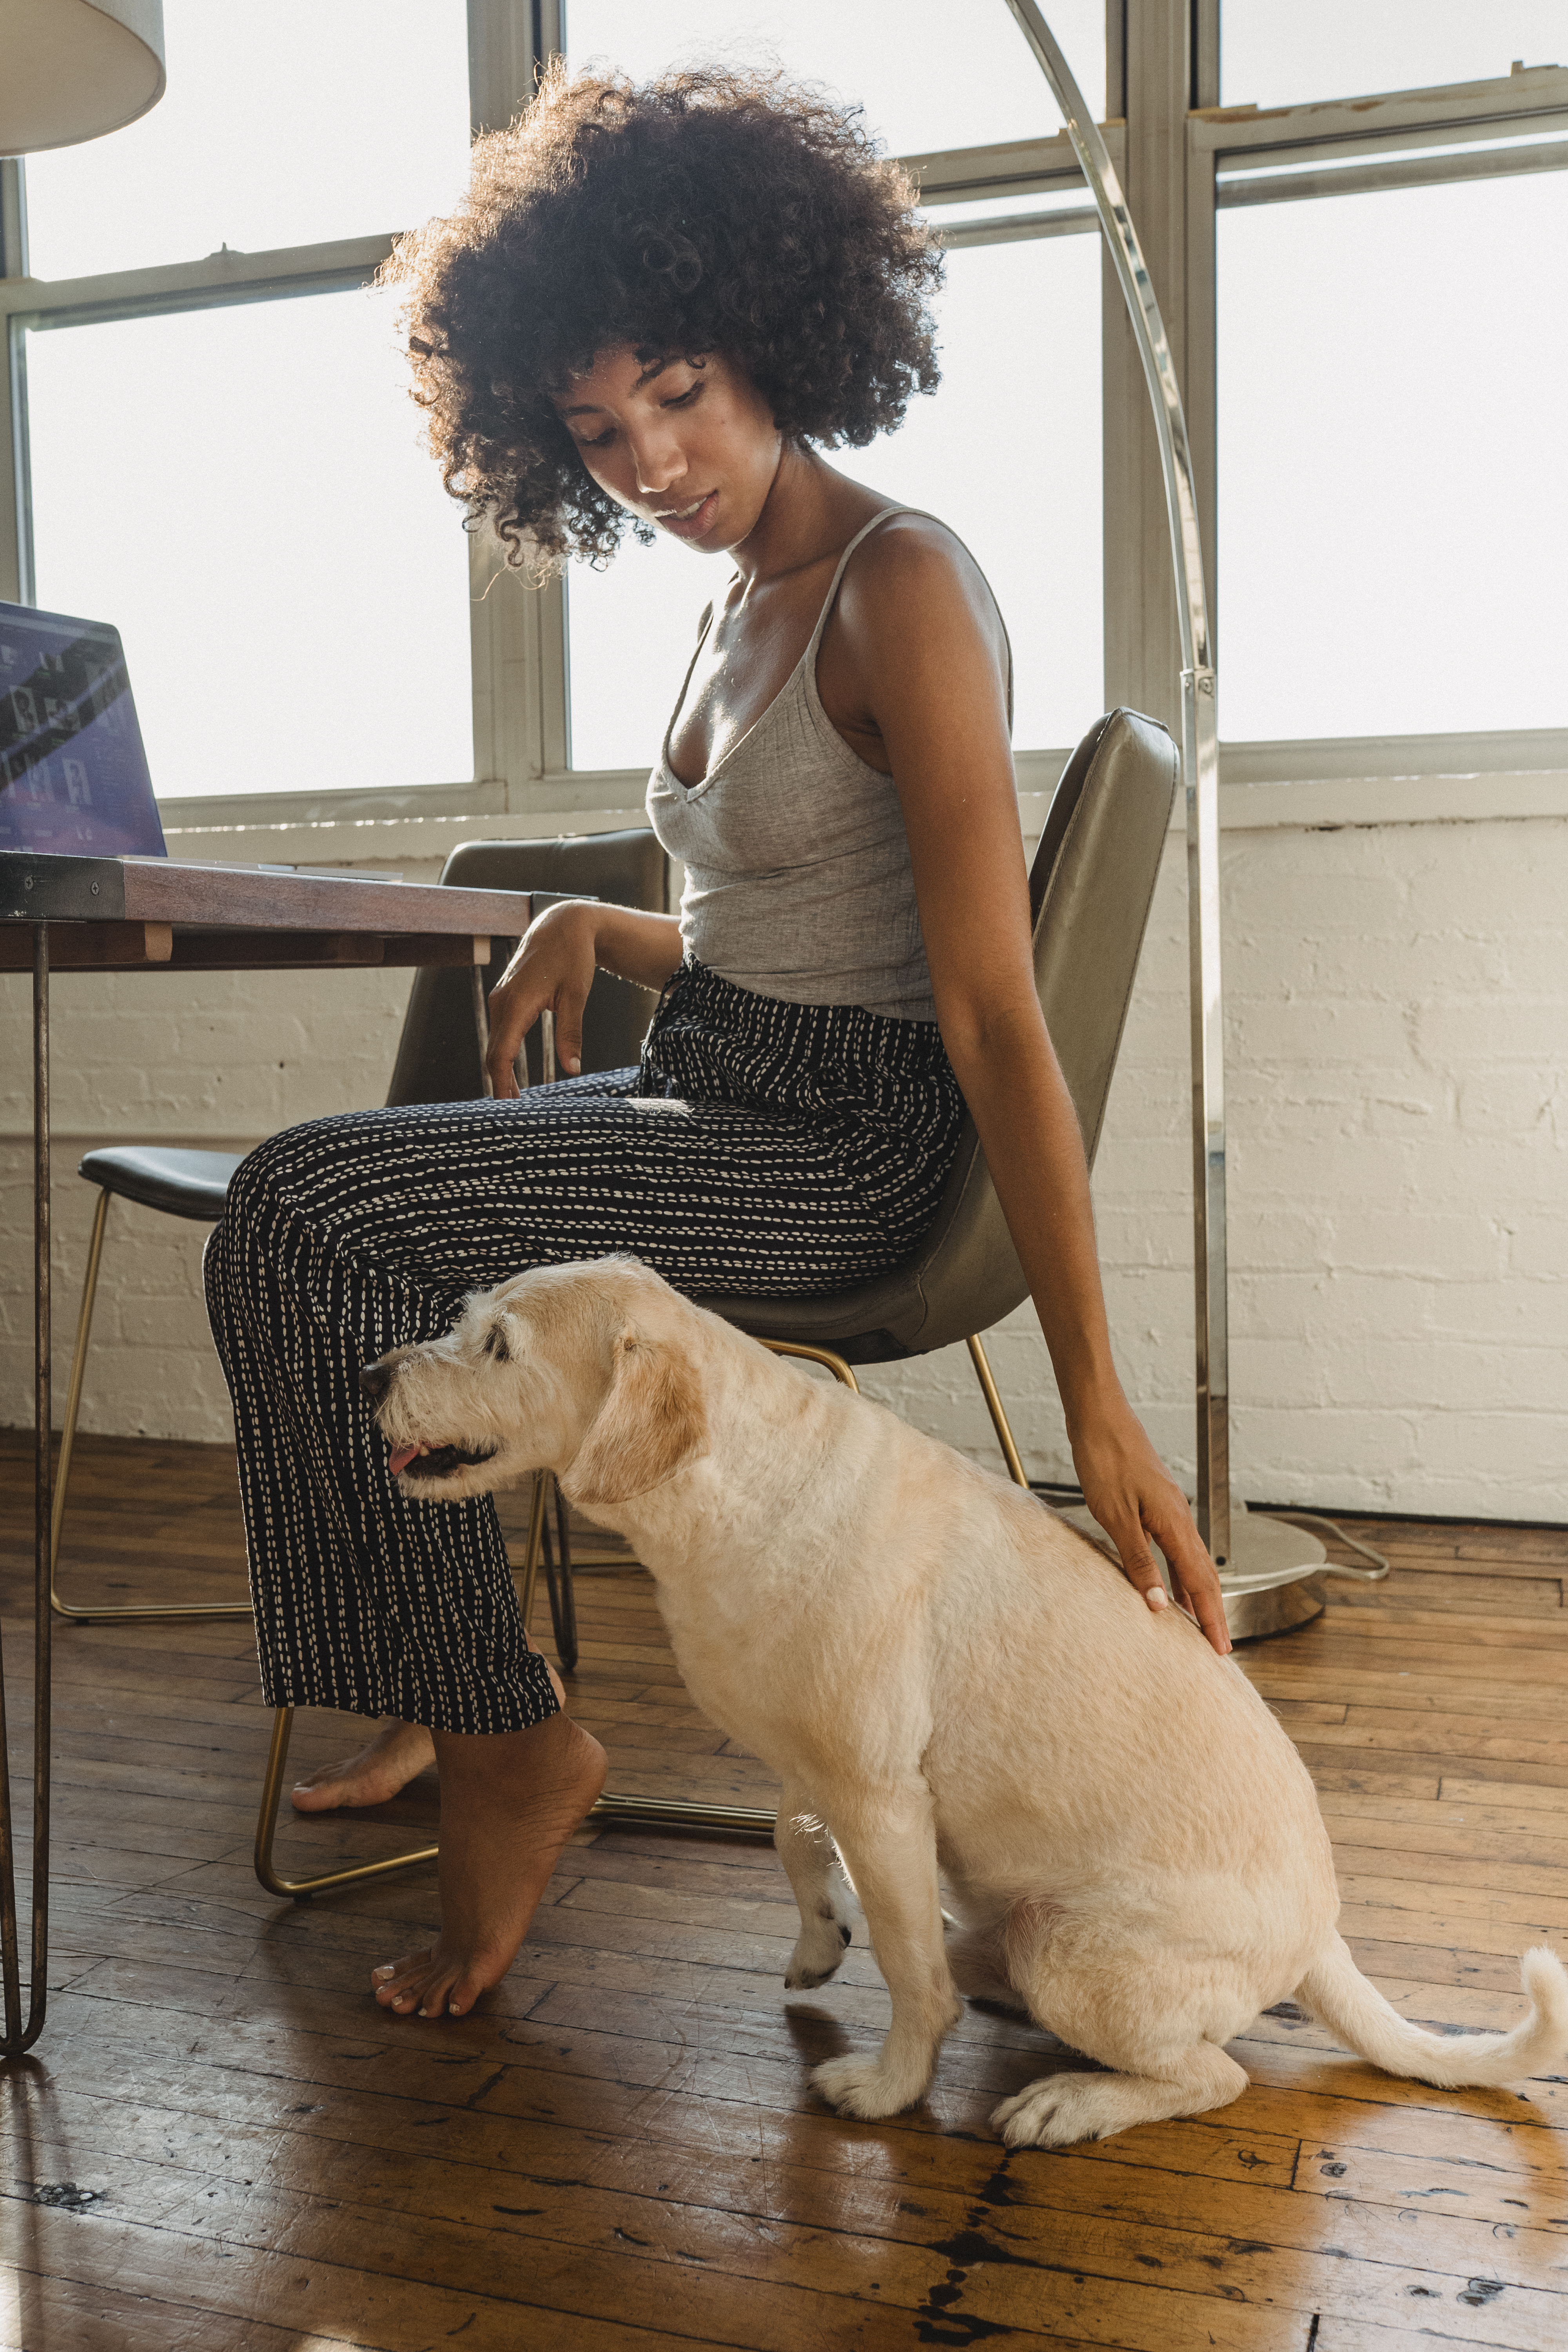 black female freelancer sitting with dog and computer at table